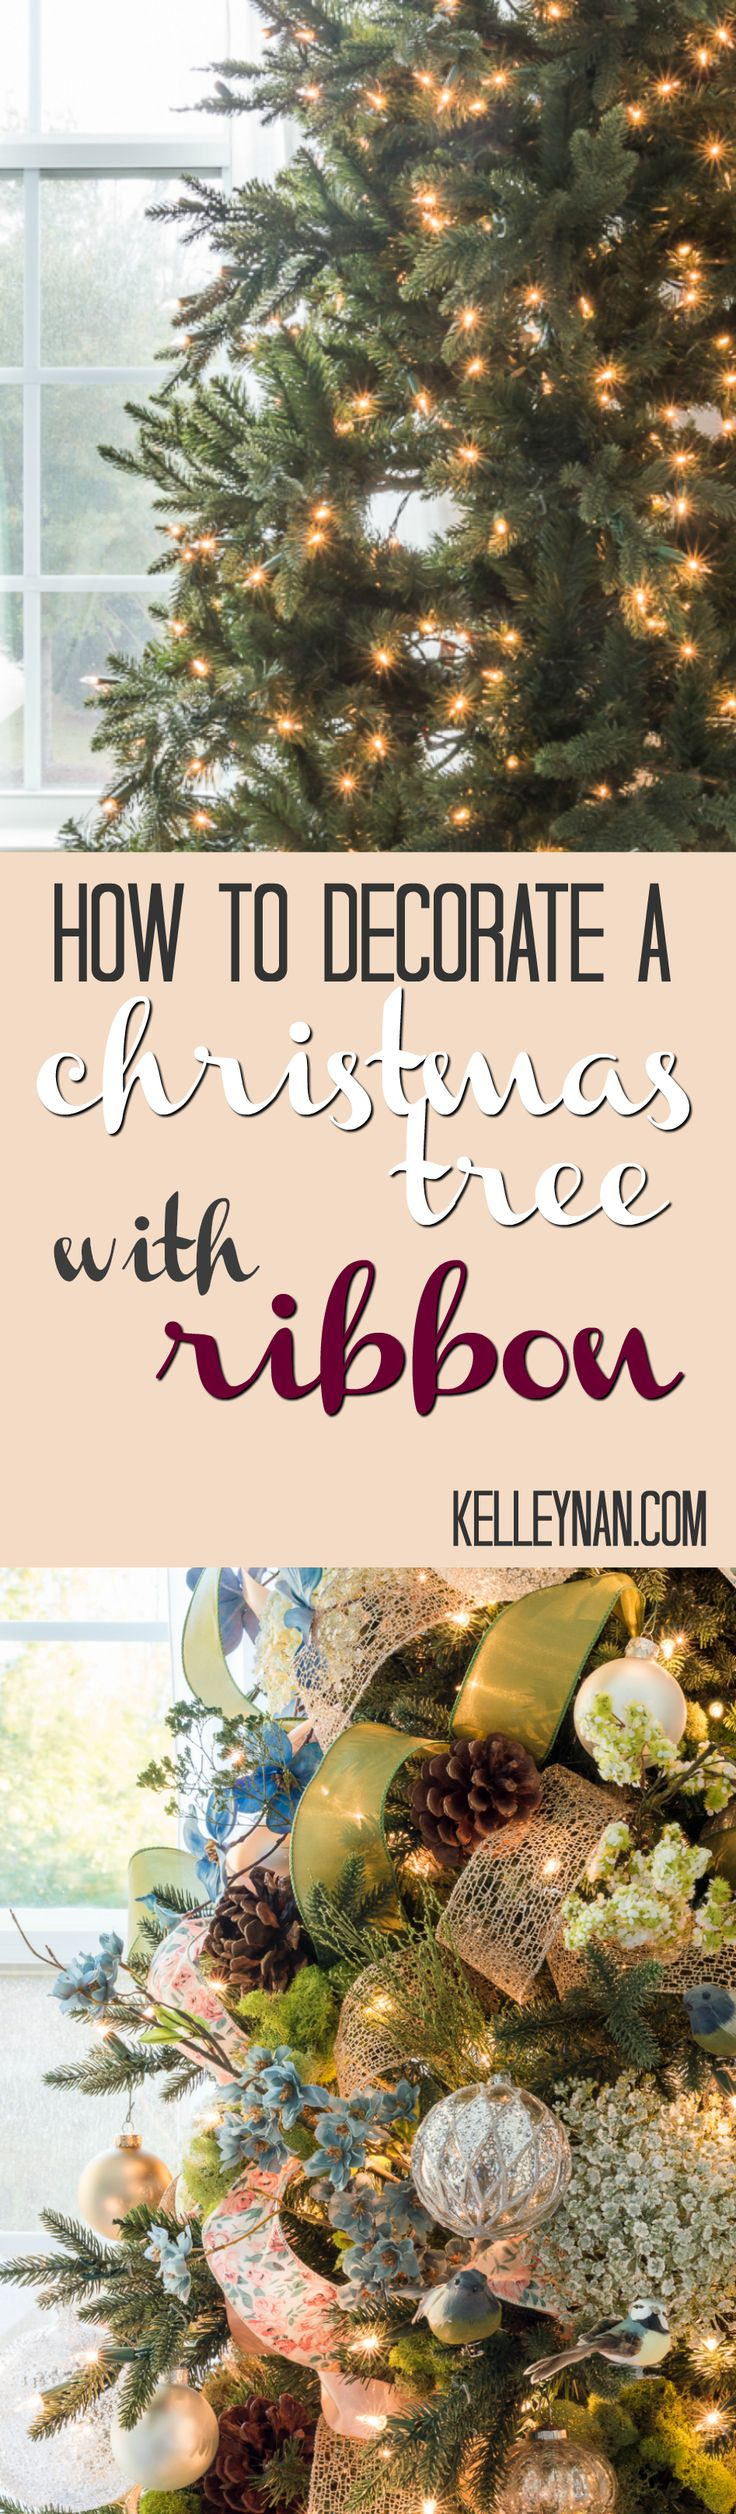 How to Decorate a Christmas Tree with Ribbon - Easy Tutorial on how to trim a tree with picks, ribbon, and ornaments for a beautiful, whimsical result.